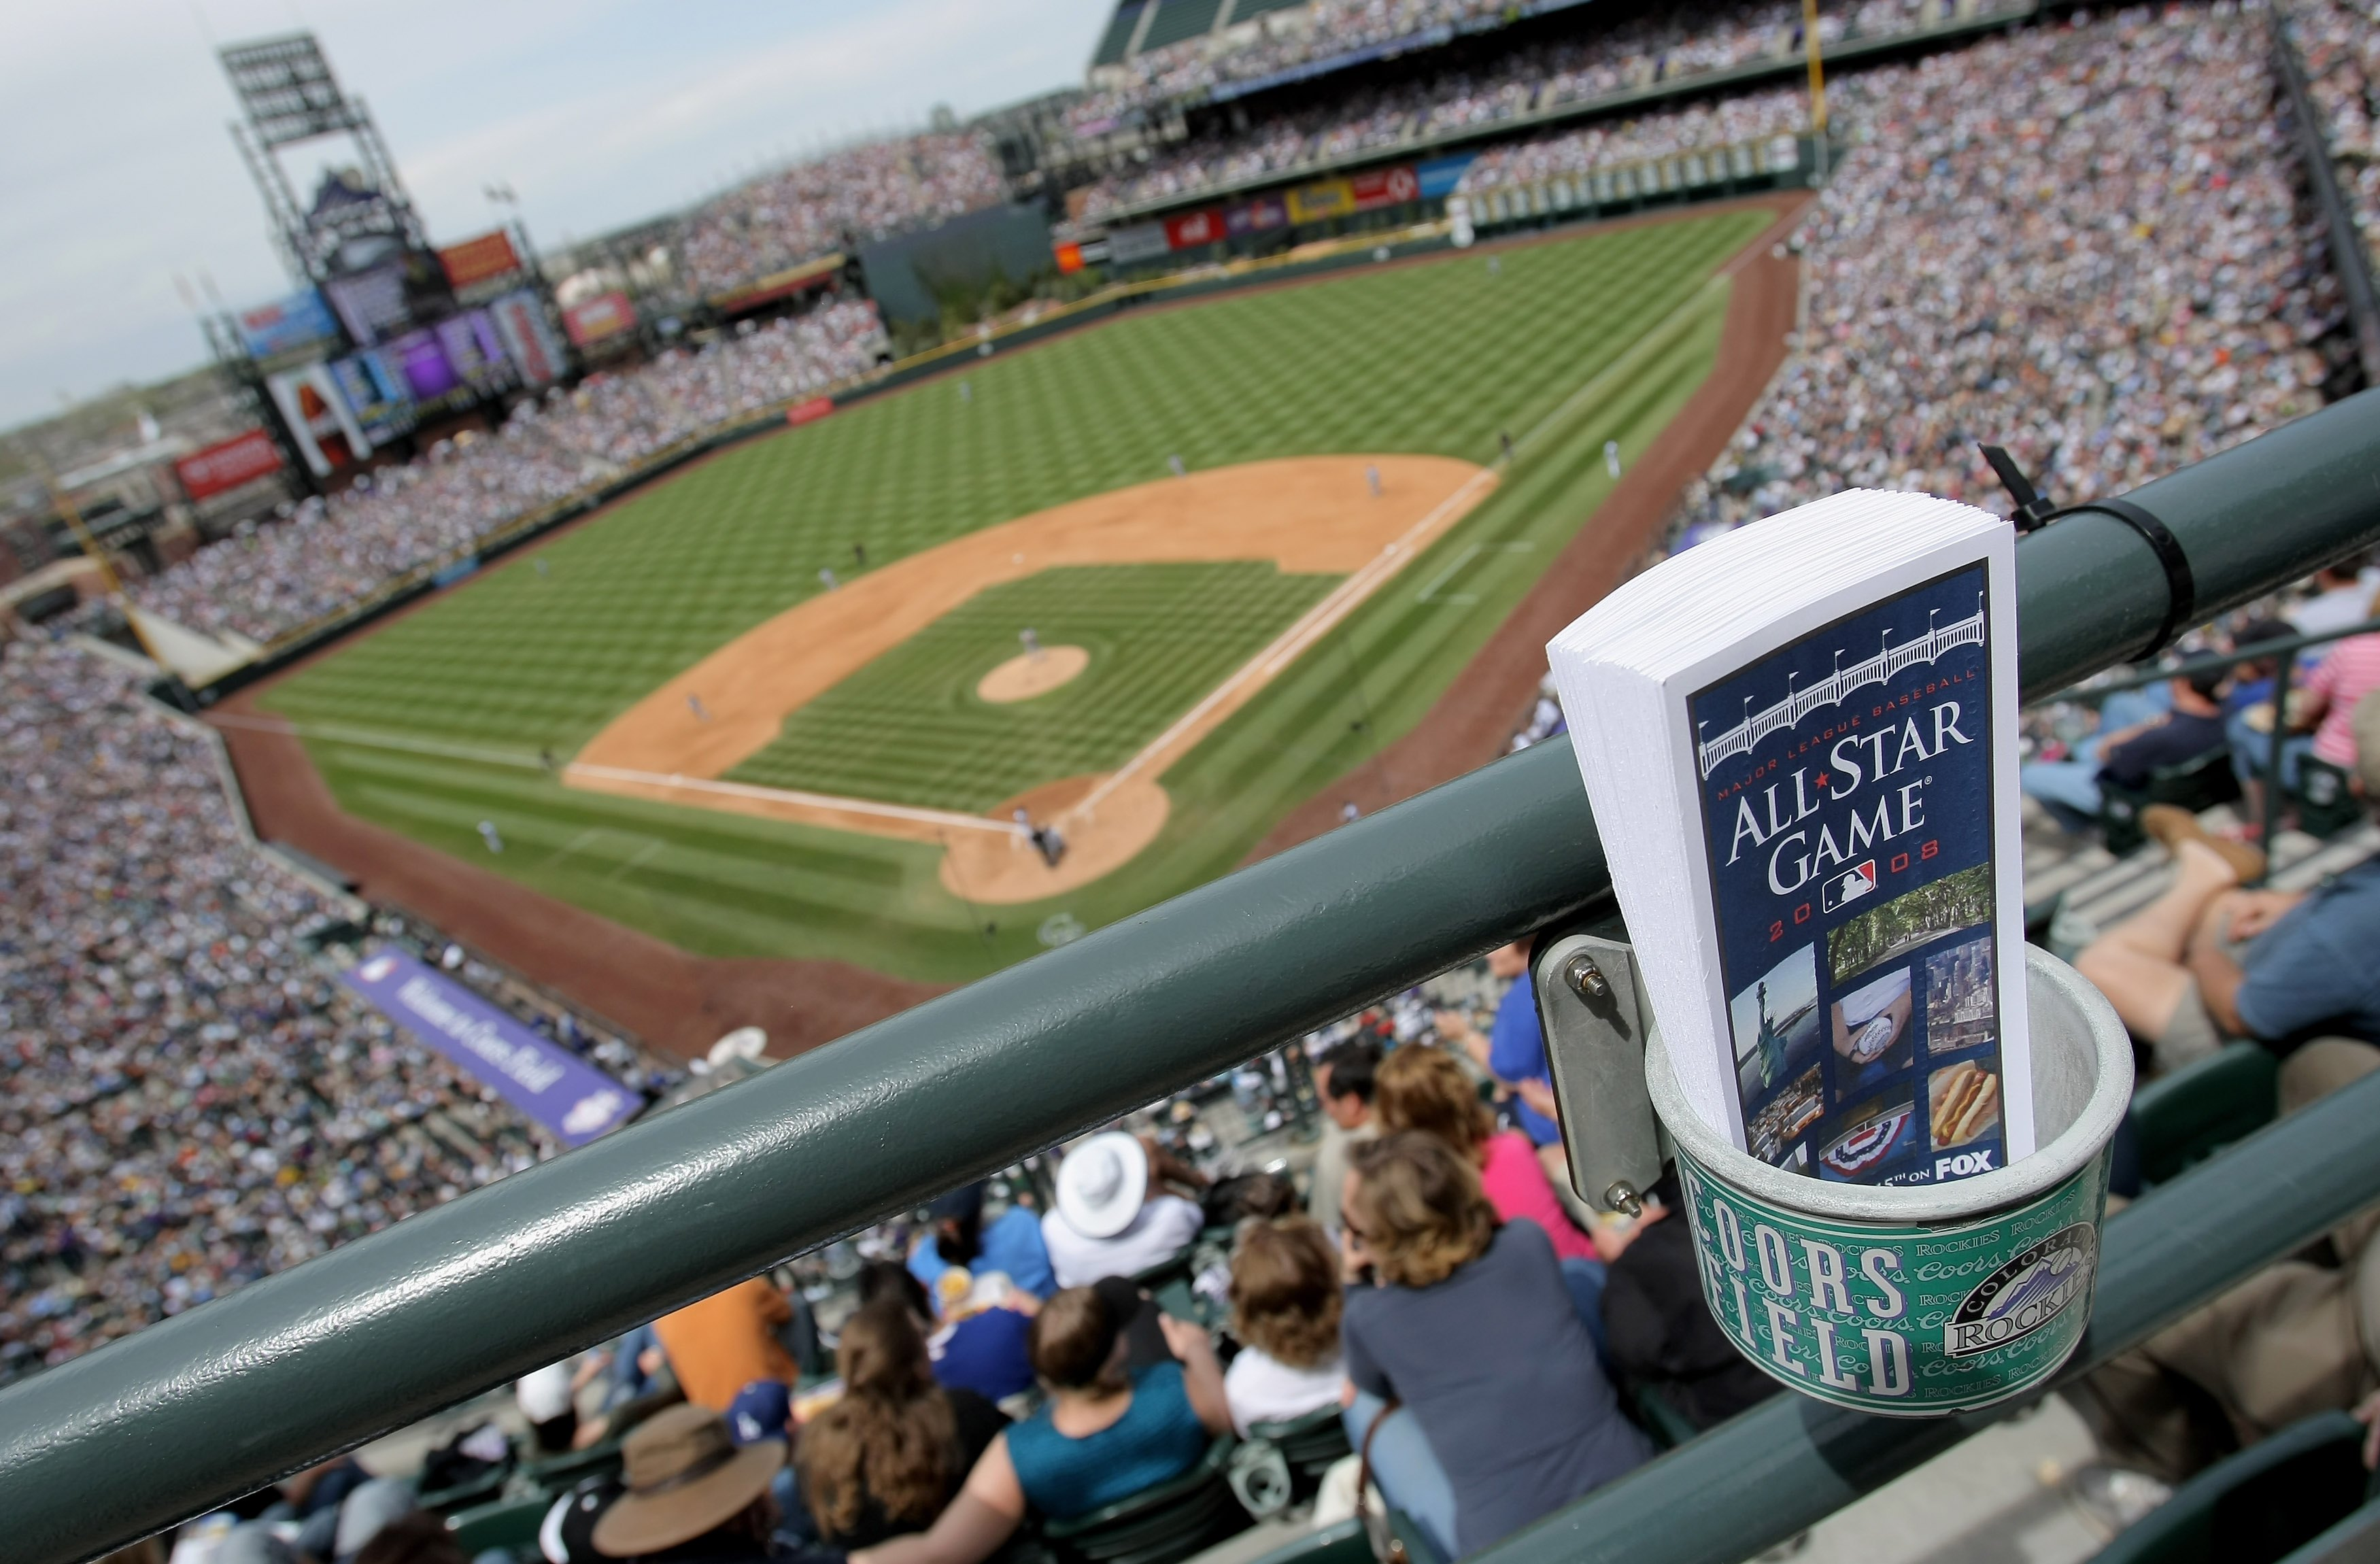 No Colorado Rockies pitchers attended the ASG in Coors Field, that's for sure.